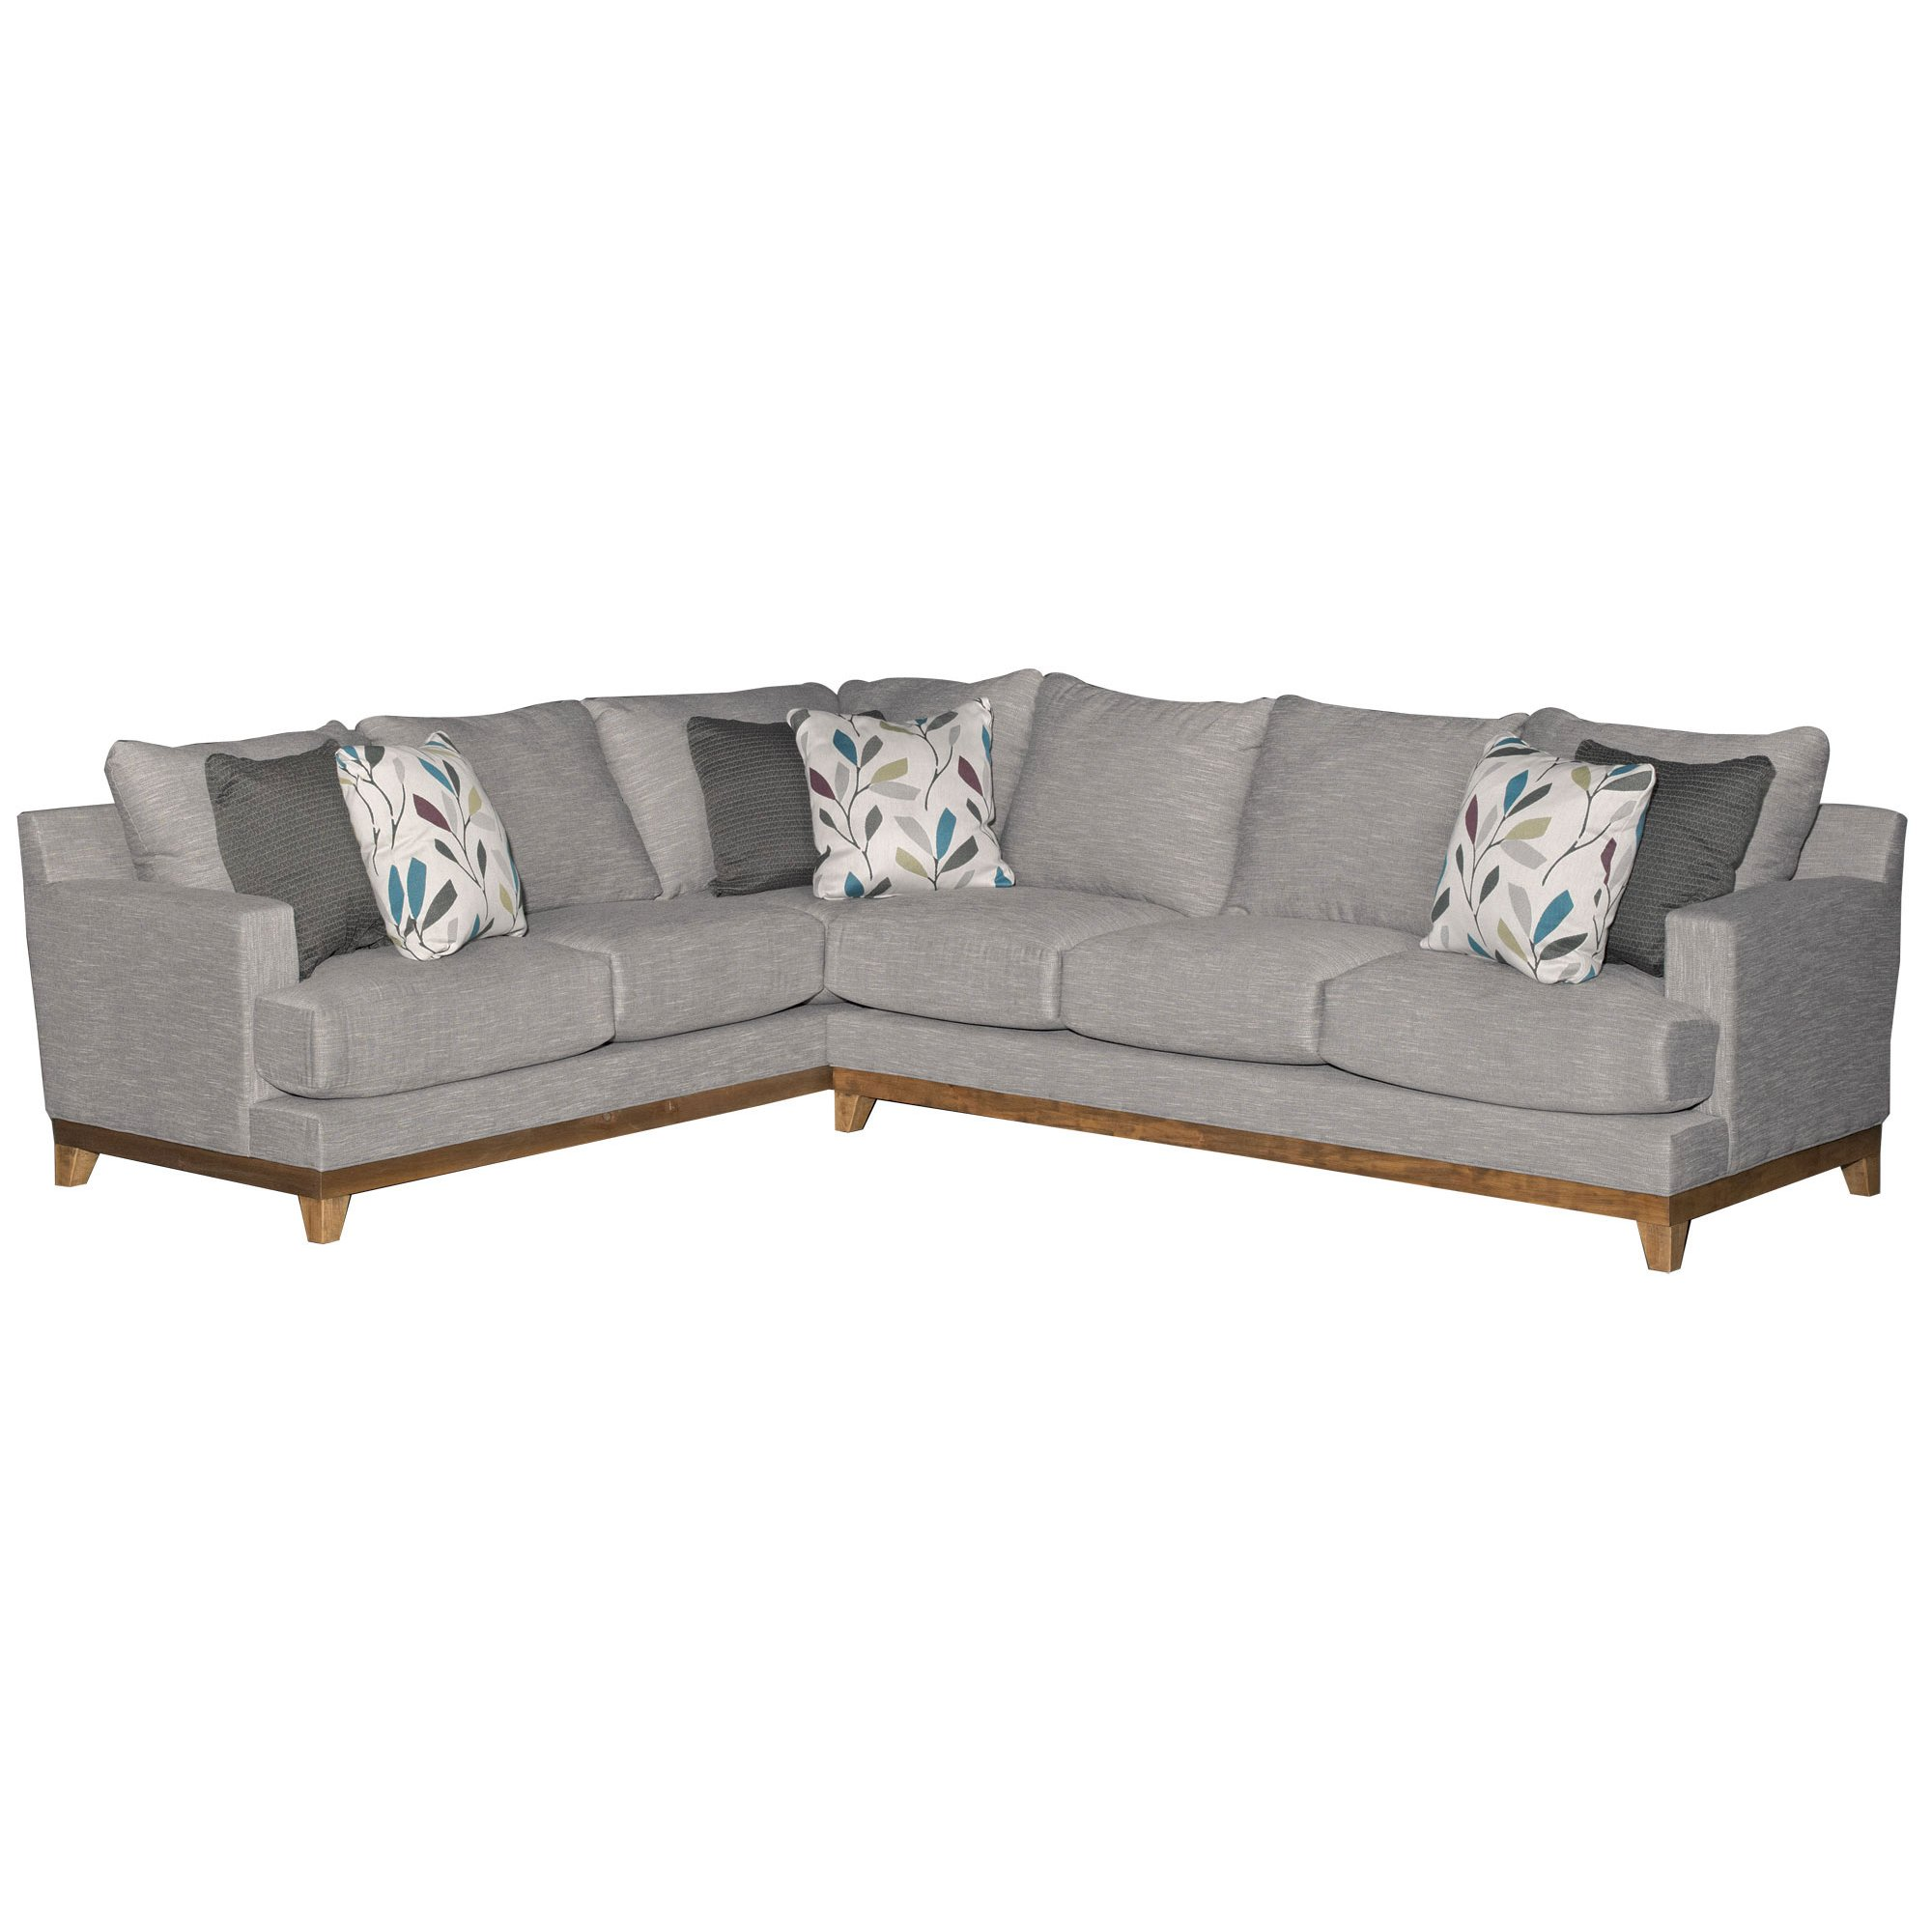 ... Gray Casual Contemporary 2-Piece Sectional - Dayton ...  sc 1 st  RC Willey : shop sectionals - Sectionals, Sofas & Couches